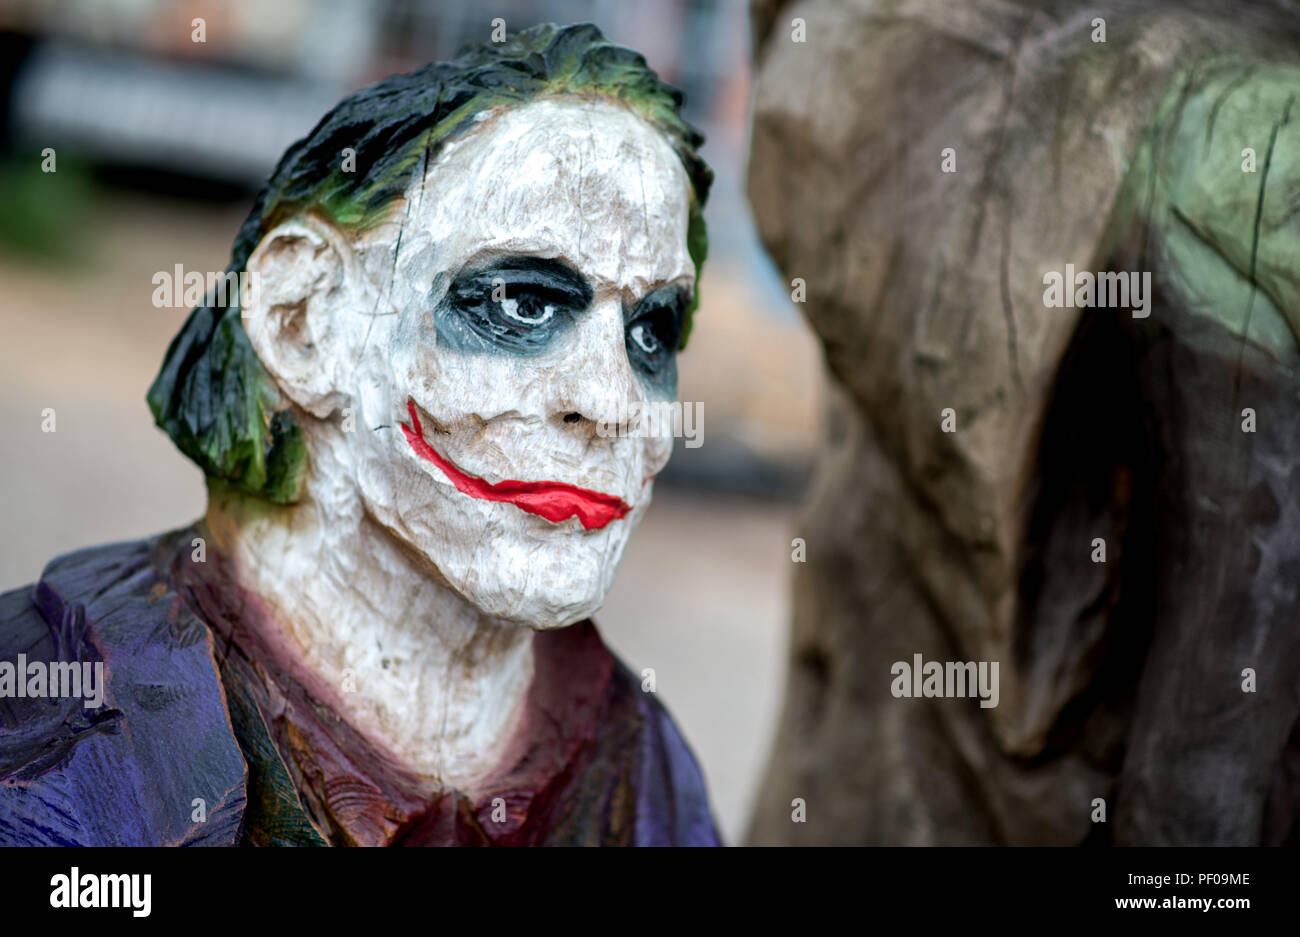 Saterland, Germany. 18th Aug, 2018. The wooden film character Joker stands on a pedestal during the Northwest German championship in chainsaw carving. A figure is carved out of wood with a chain saw during the discipline of speed carving. The wooden figures created in this way are auctioned off for a good cause. Credit: Hauke-Christian Dittrich/dpa/Alamy Live News - Stock Image